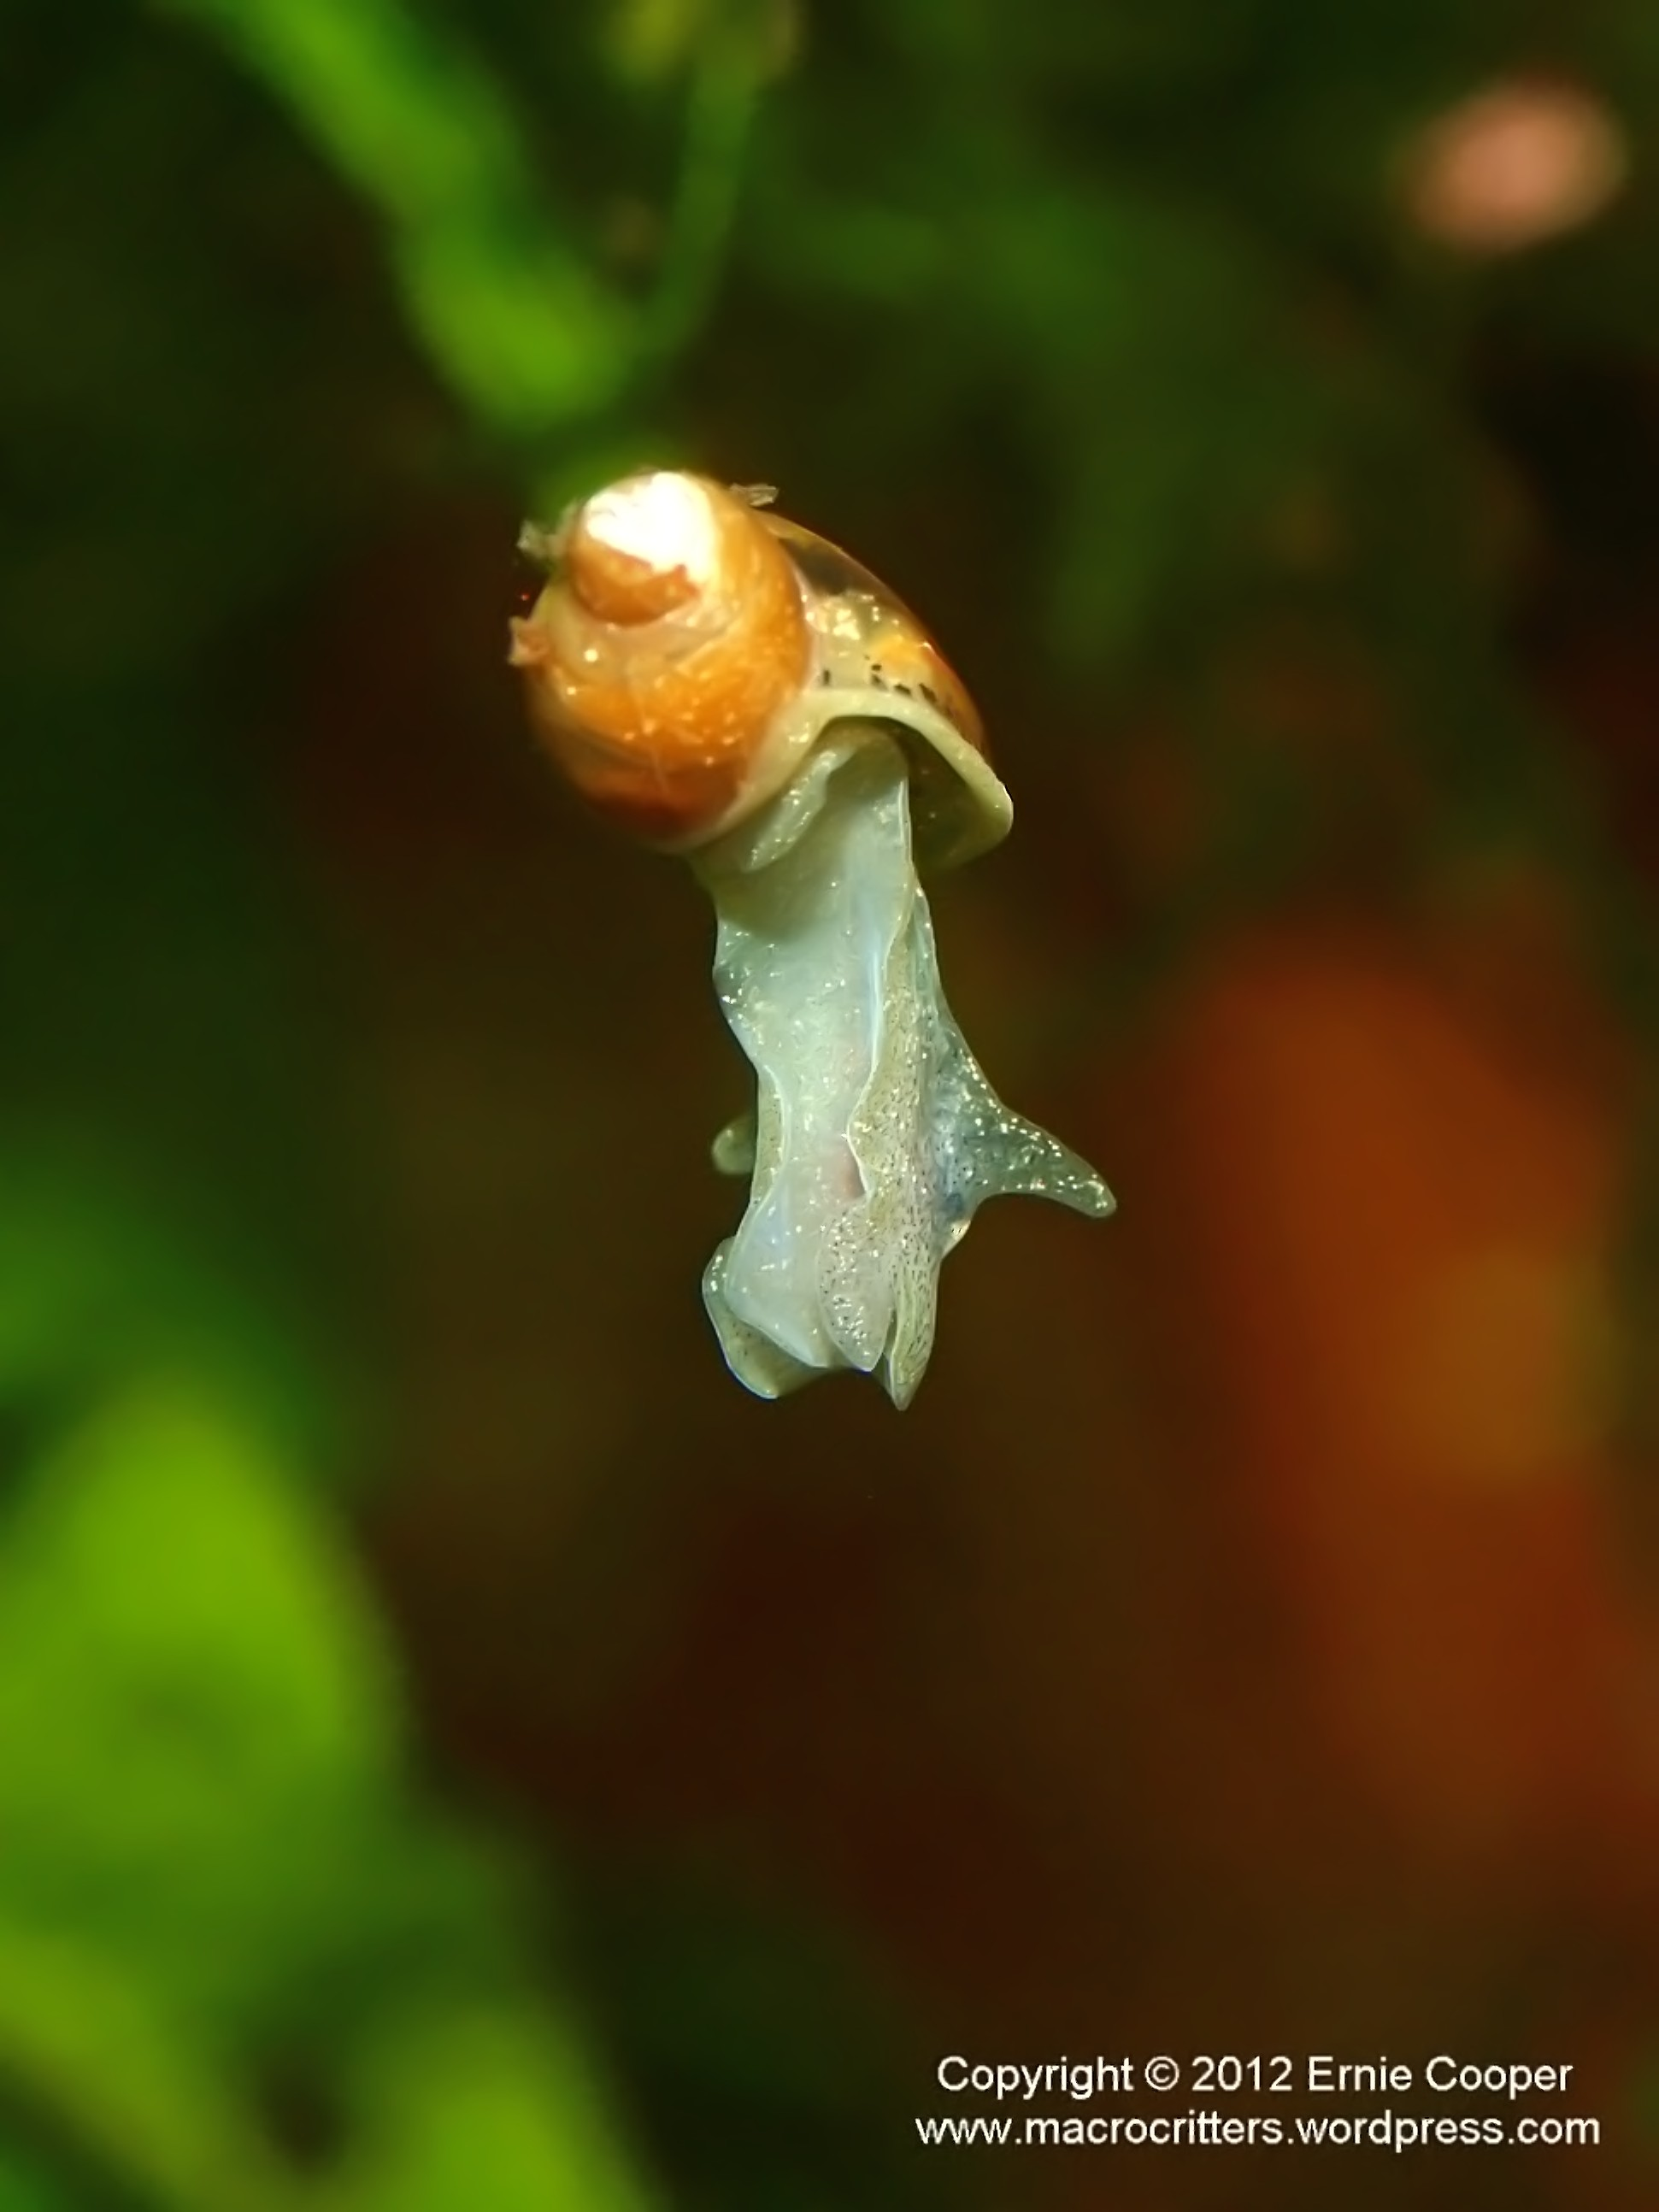 flying snail 4 copyright ernie cooper 2012_filtered